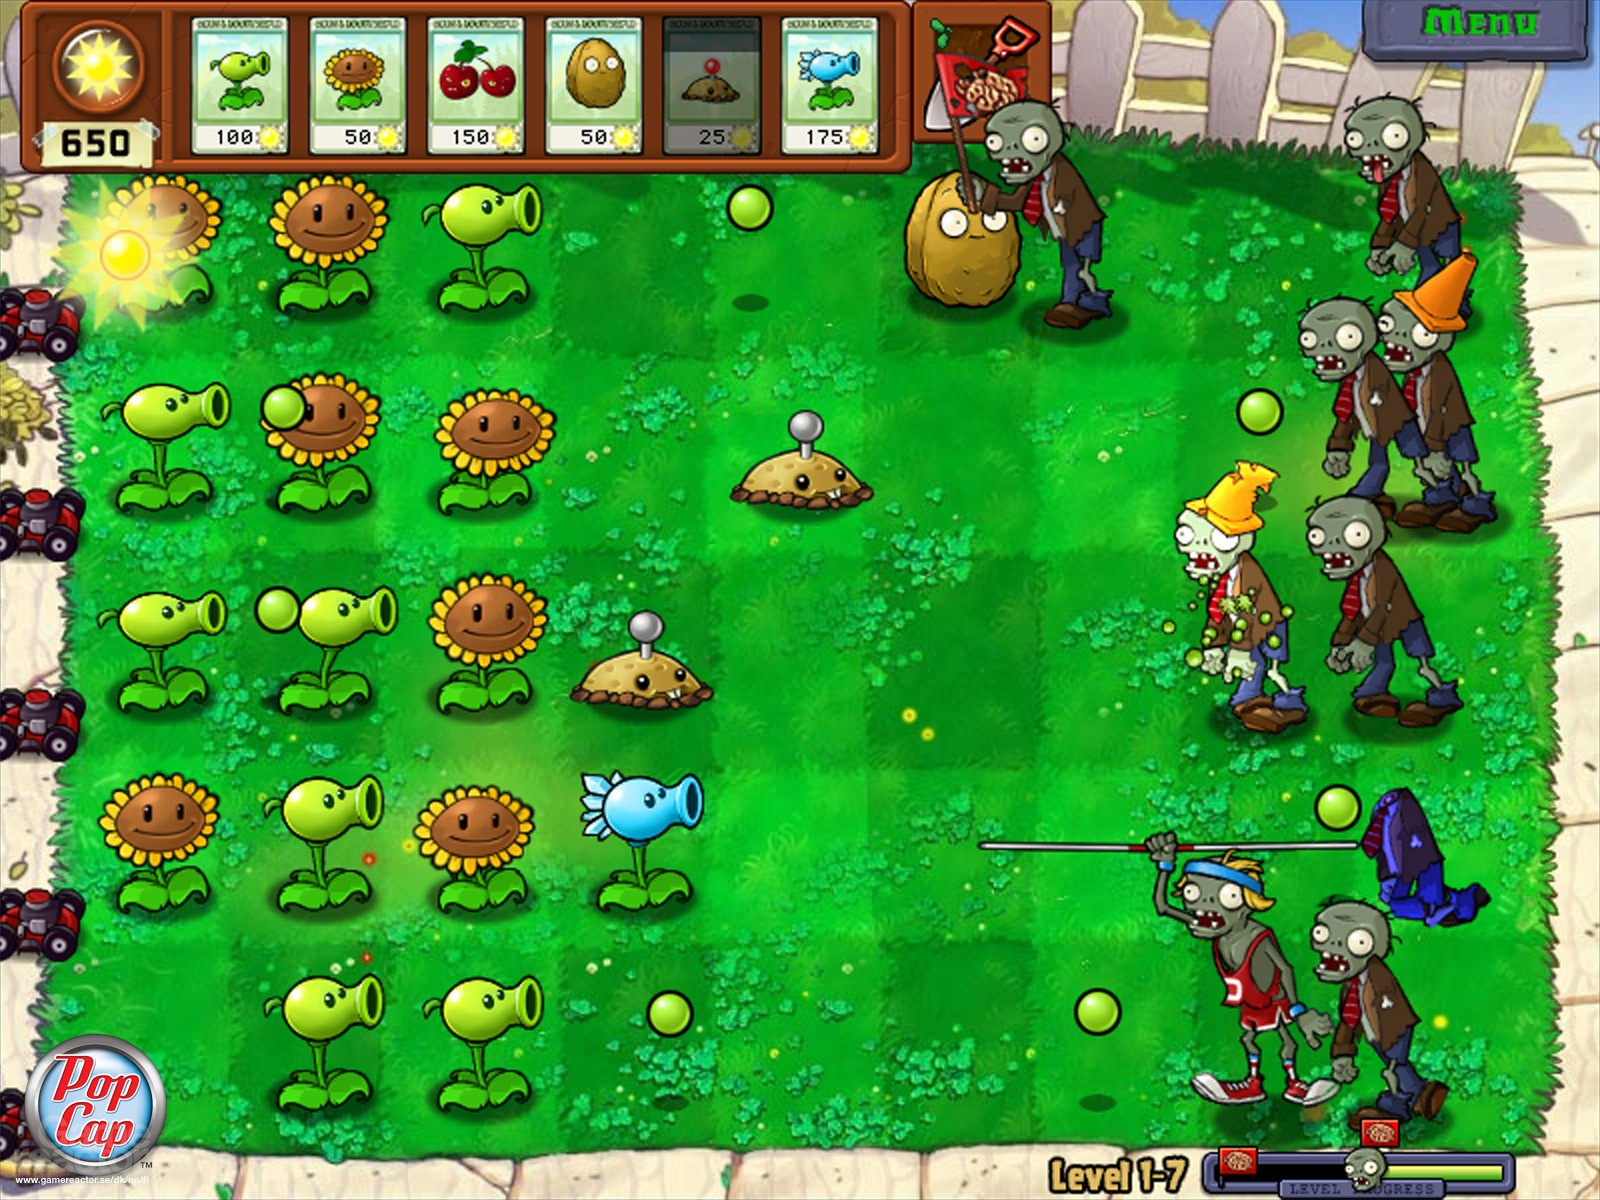 Apple Pays EA to Delay Plants vs Zombies 2 Release for Android